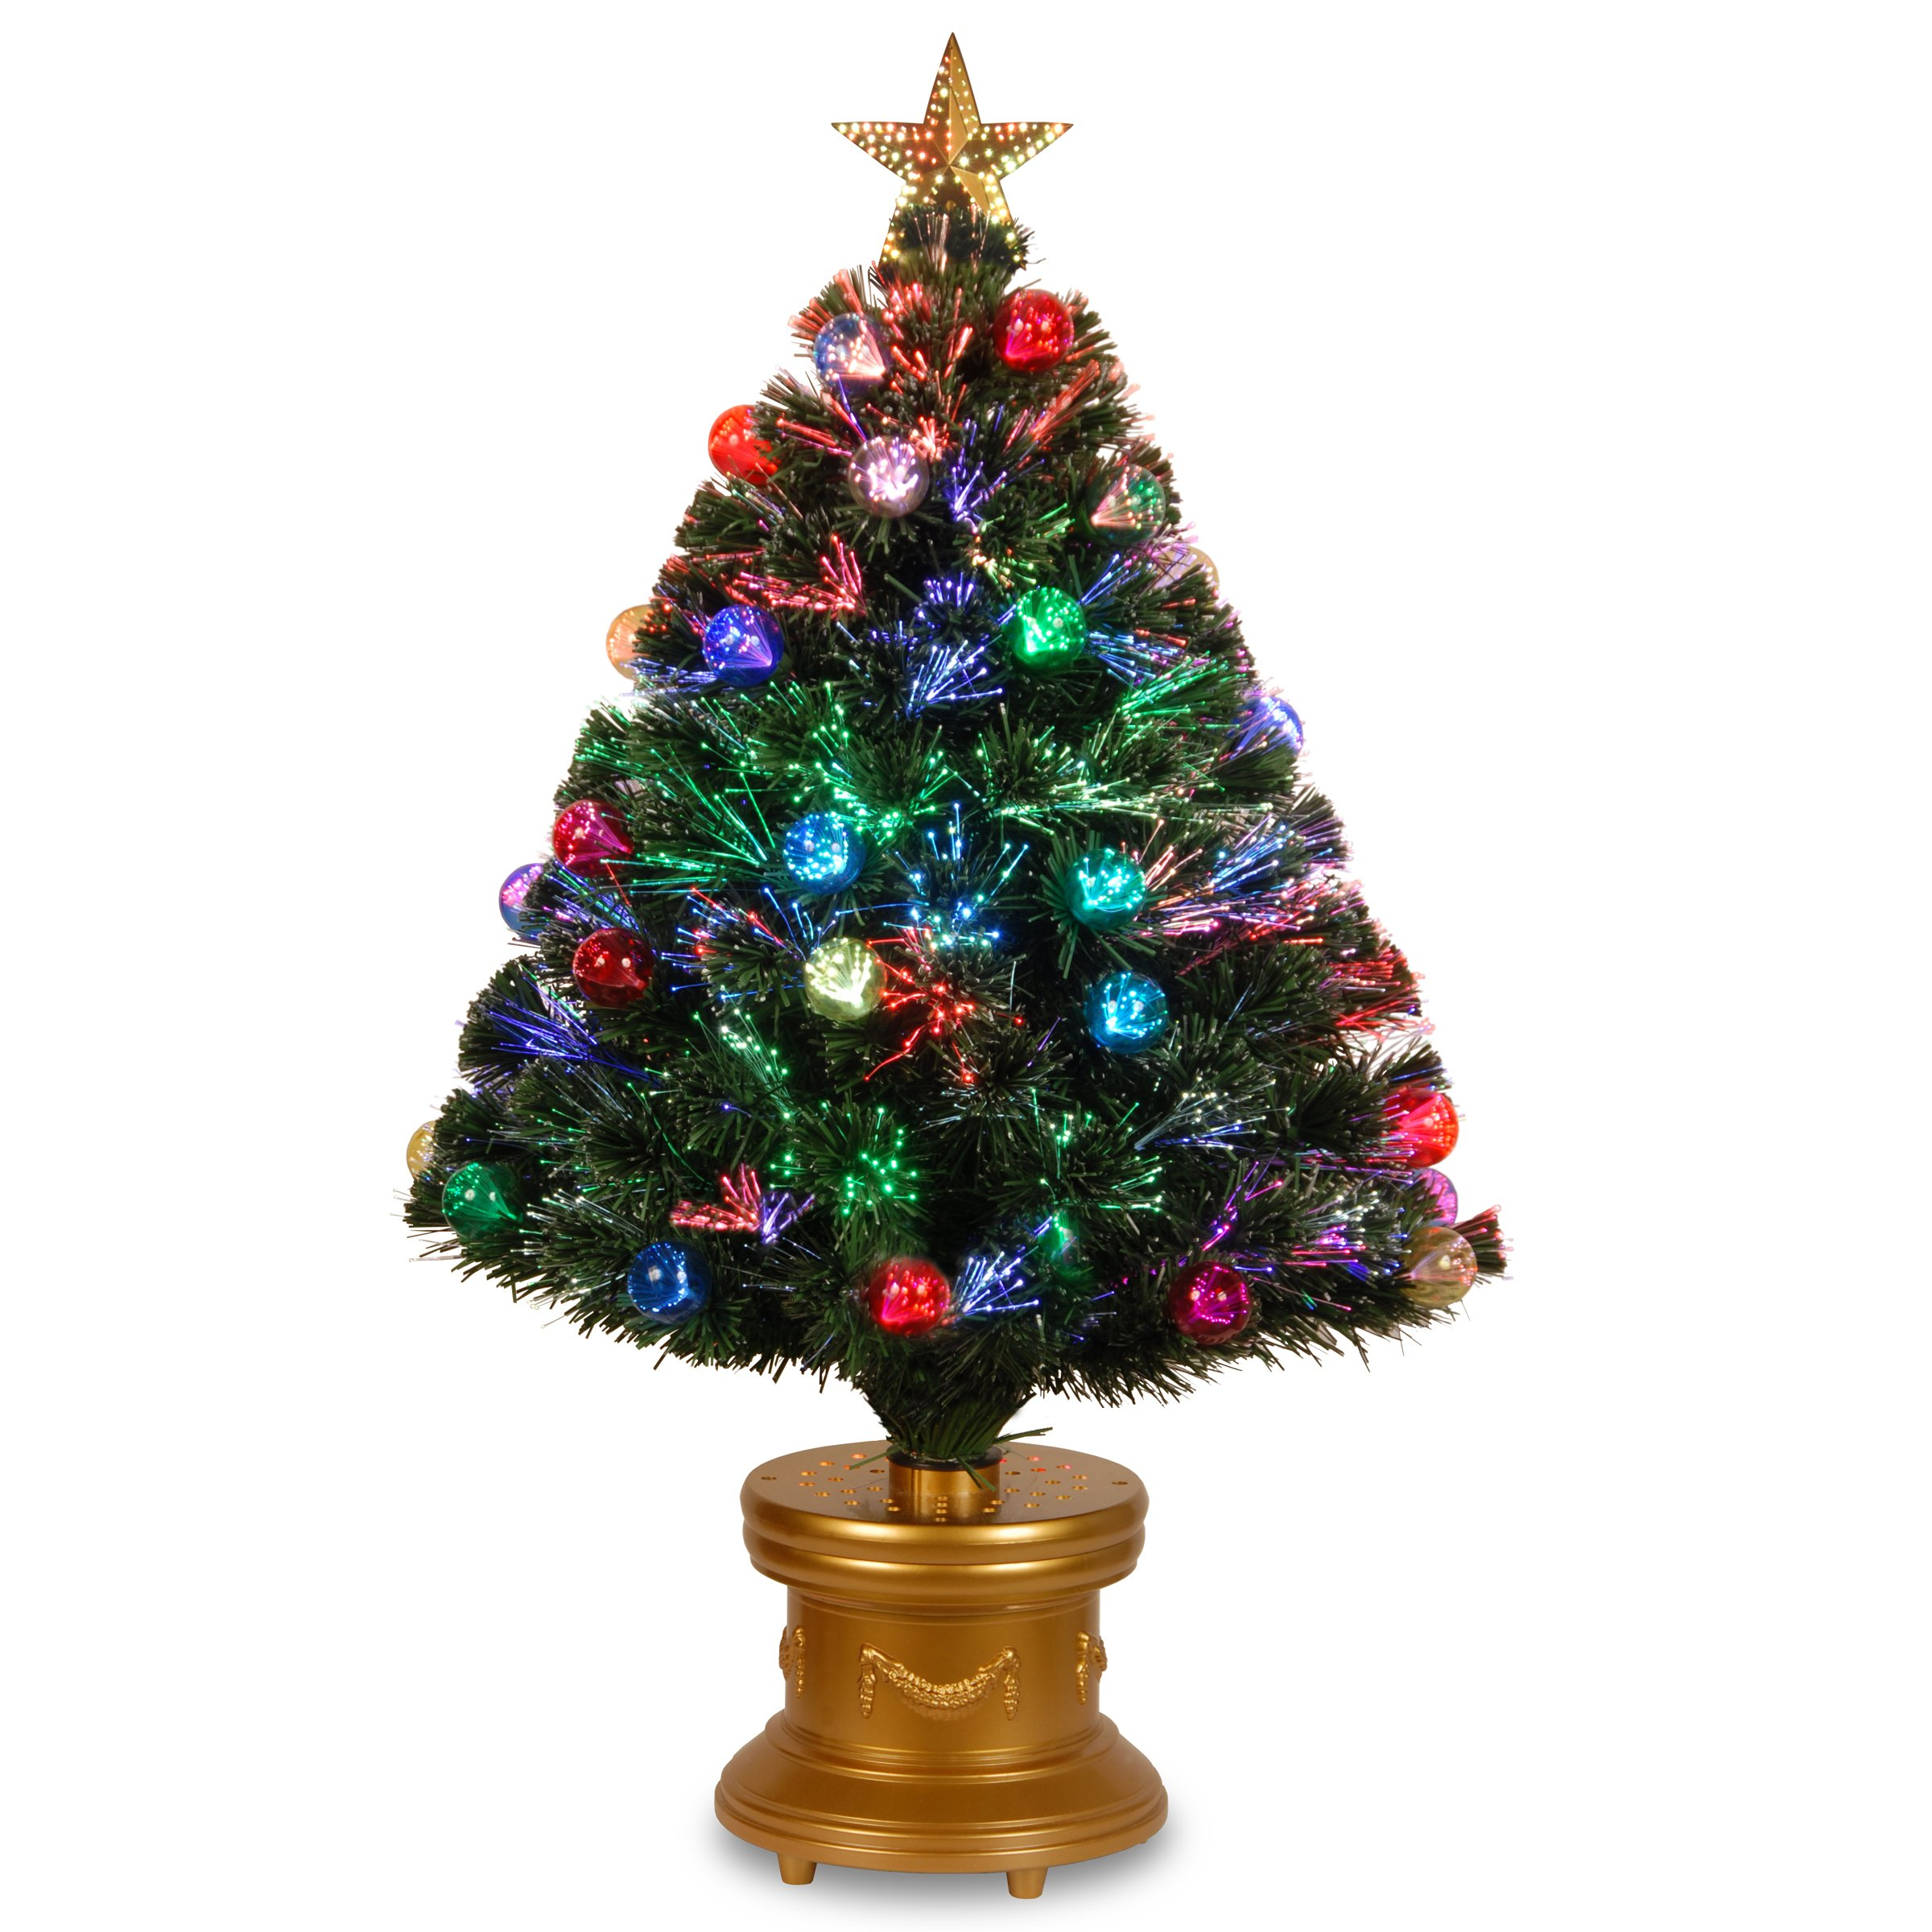 National Tree 36 Inch Fiber Optic Ornament Fireworks Tree with Gold Top Star and Multicolored Lights in Gold Base (SZOX7-100L-36-1) by National Tree Company